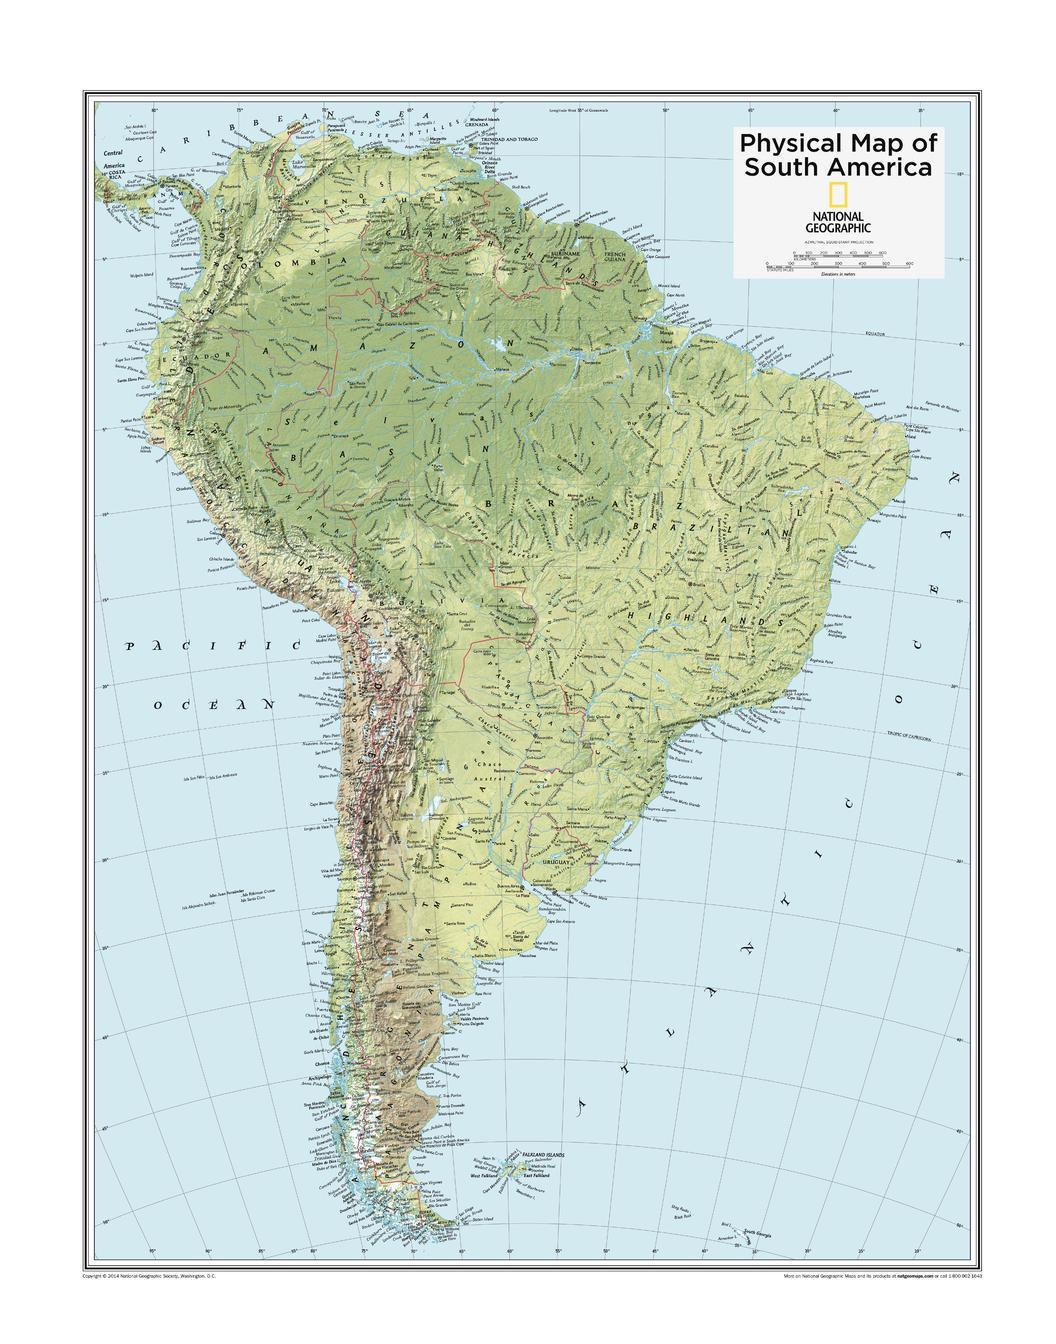 South America Physical